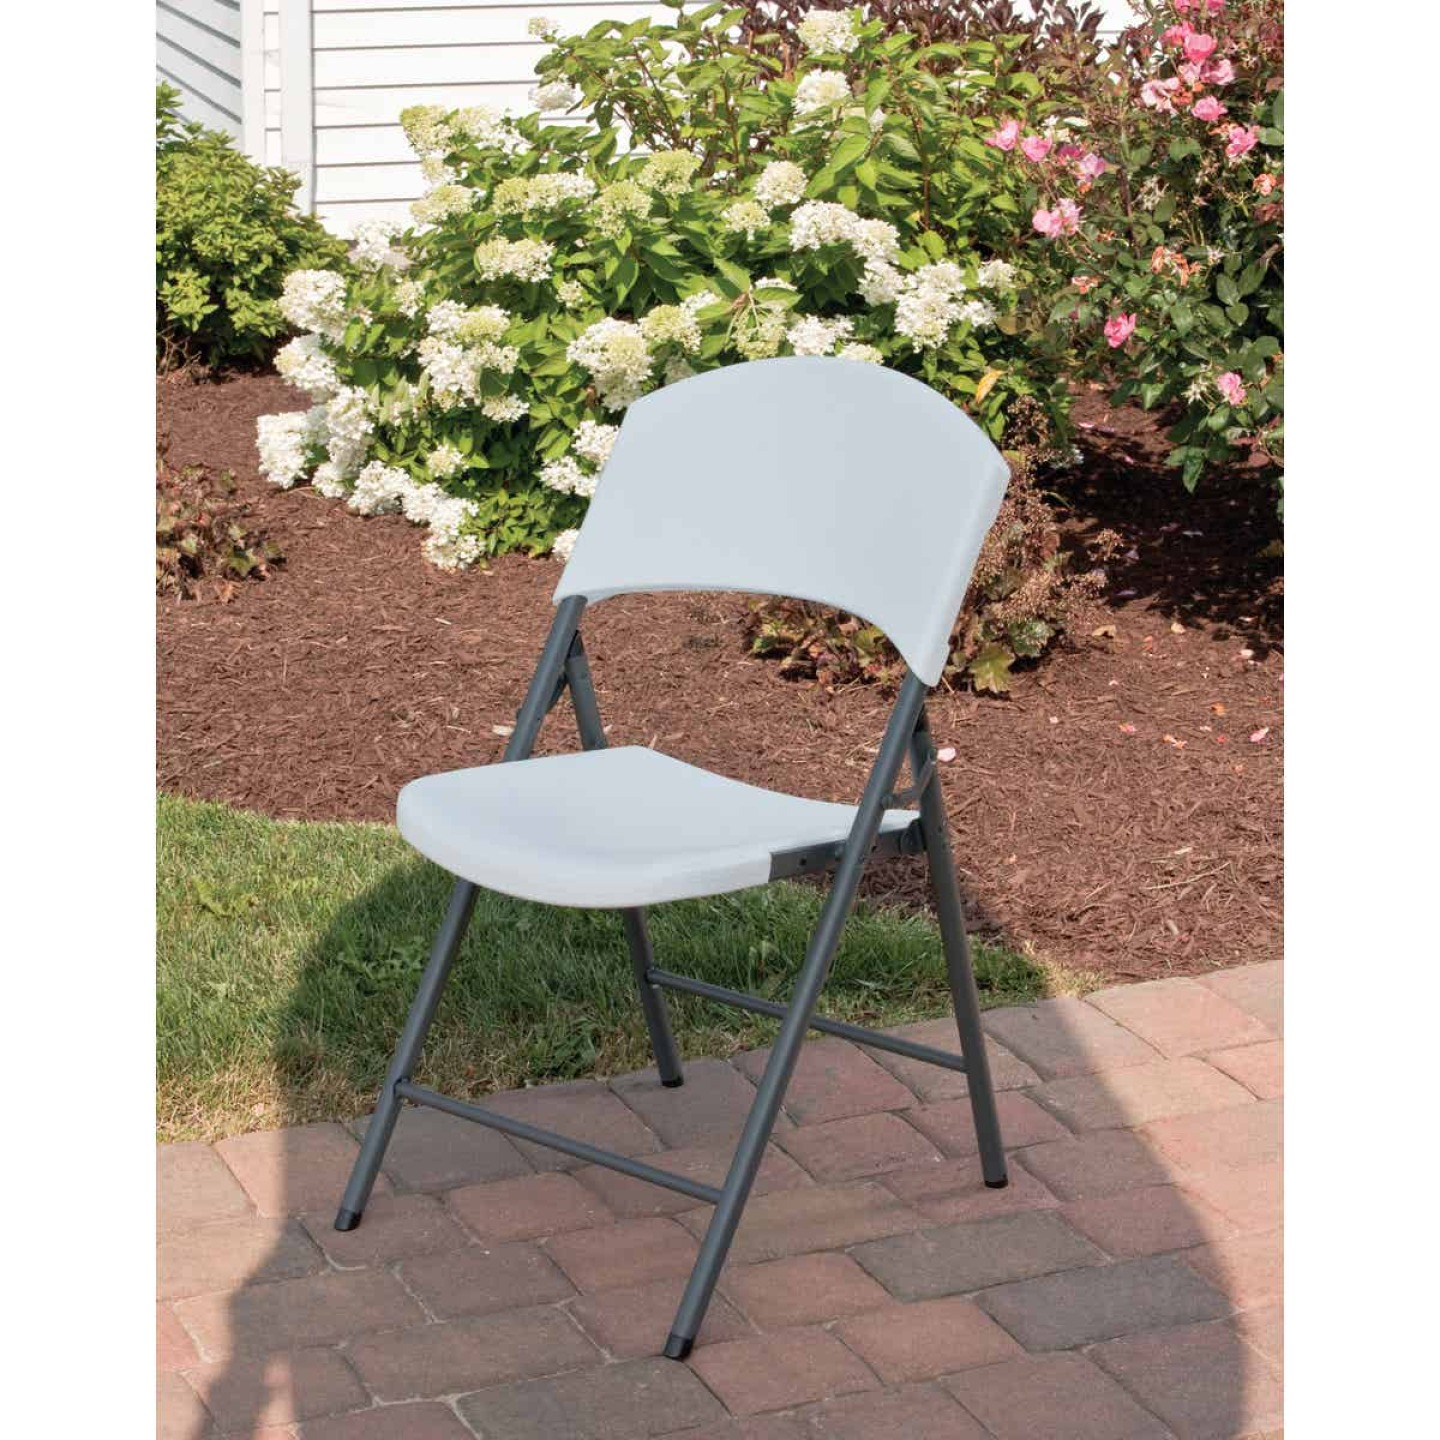 Lifetime White Granite Light Commercial Folding Chair Image 3